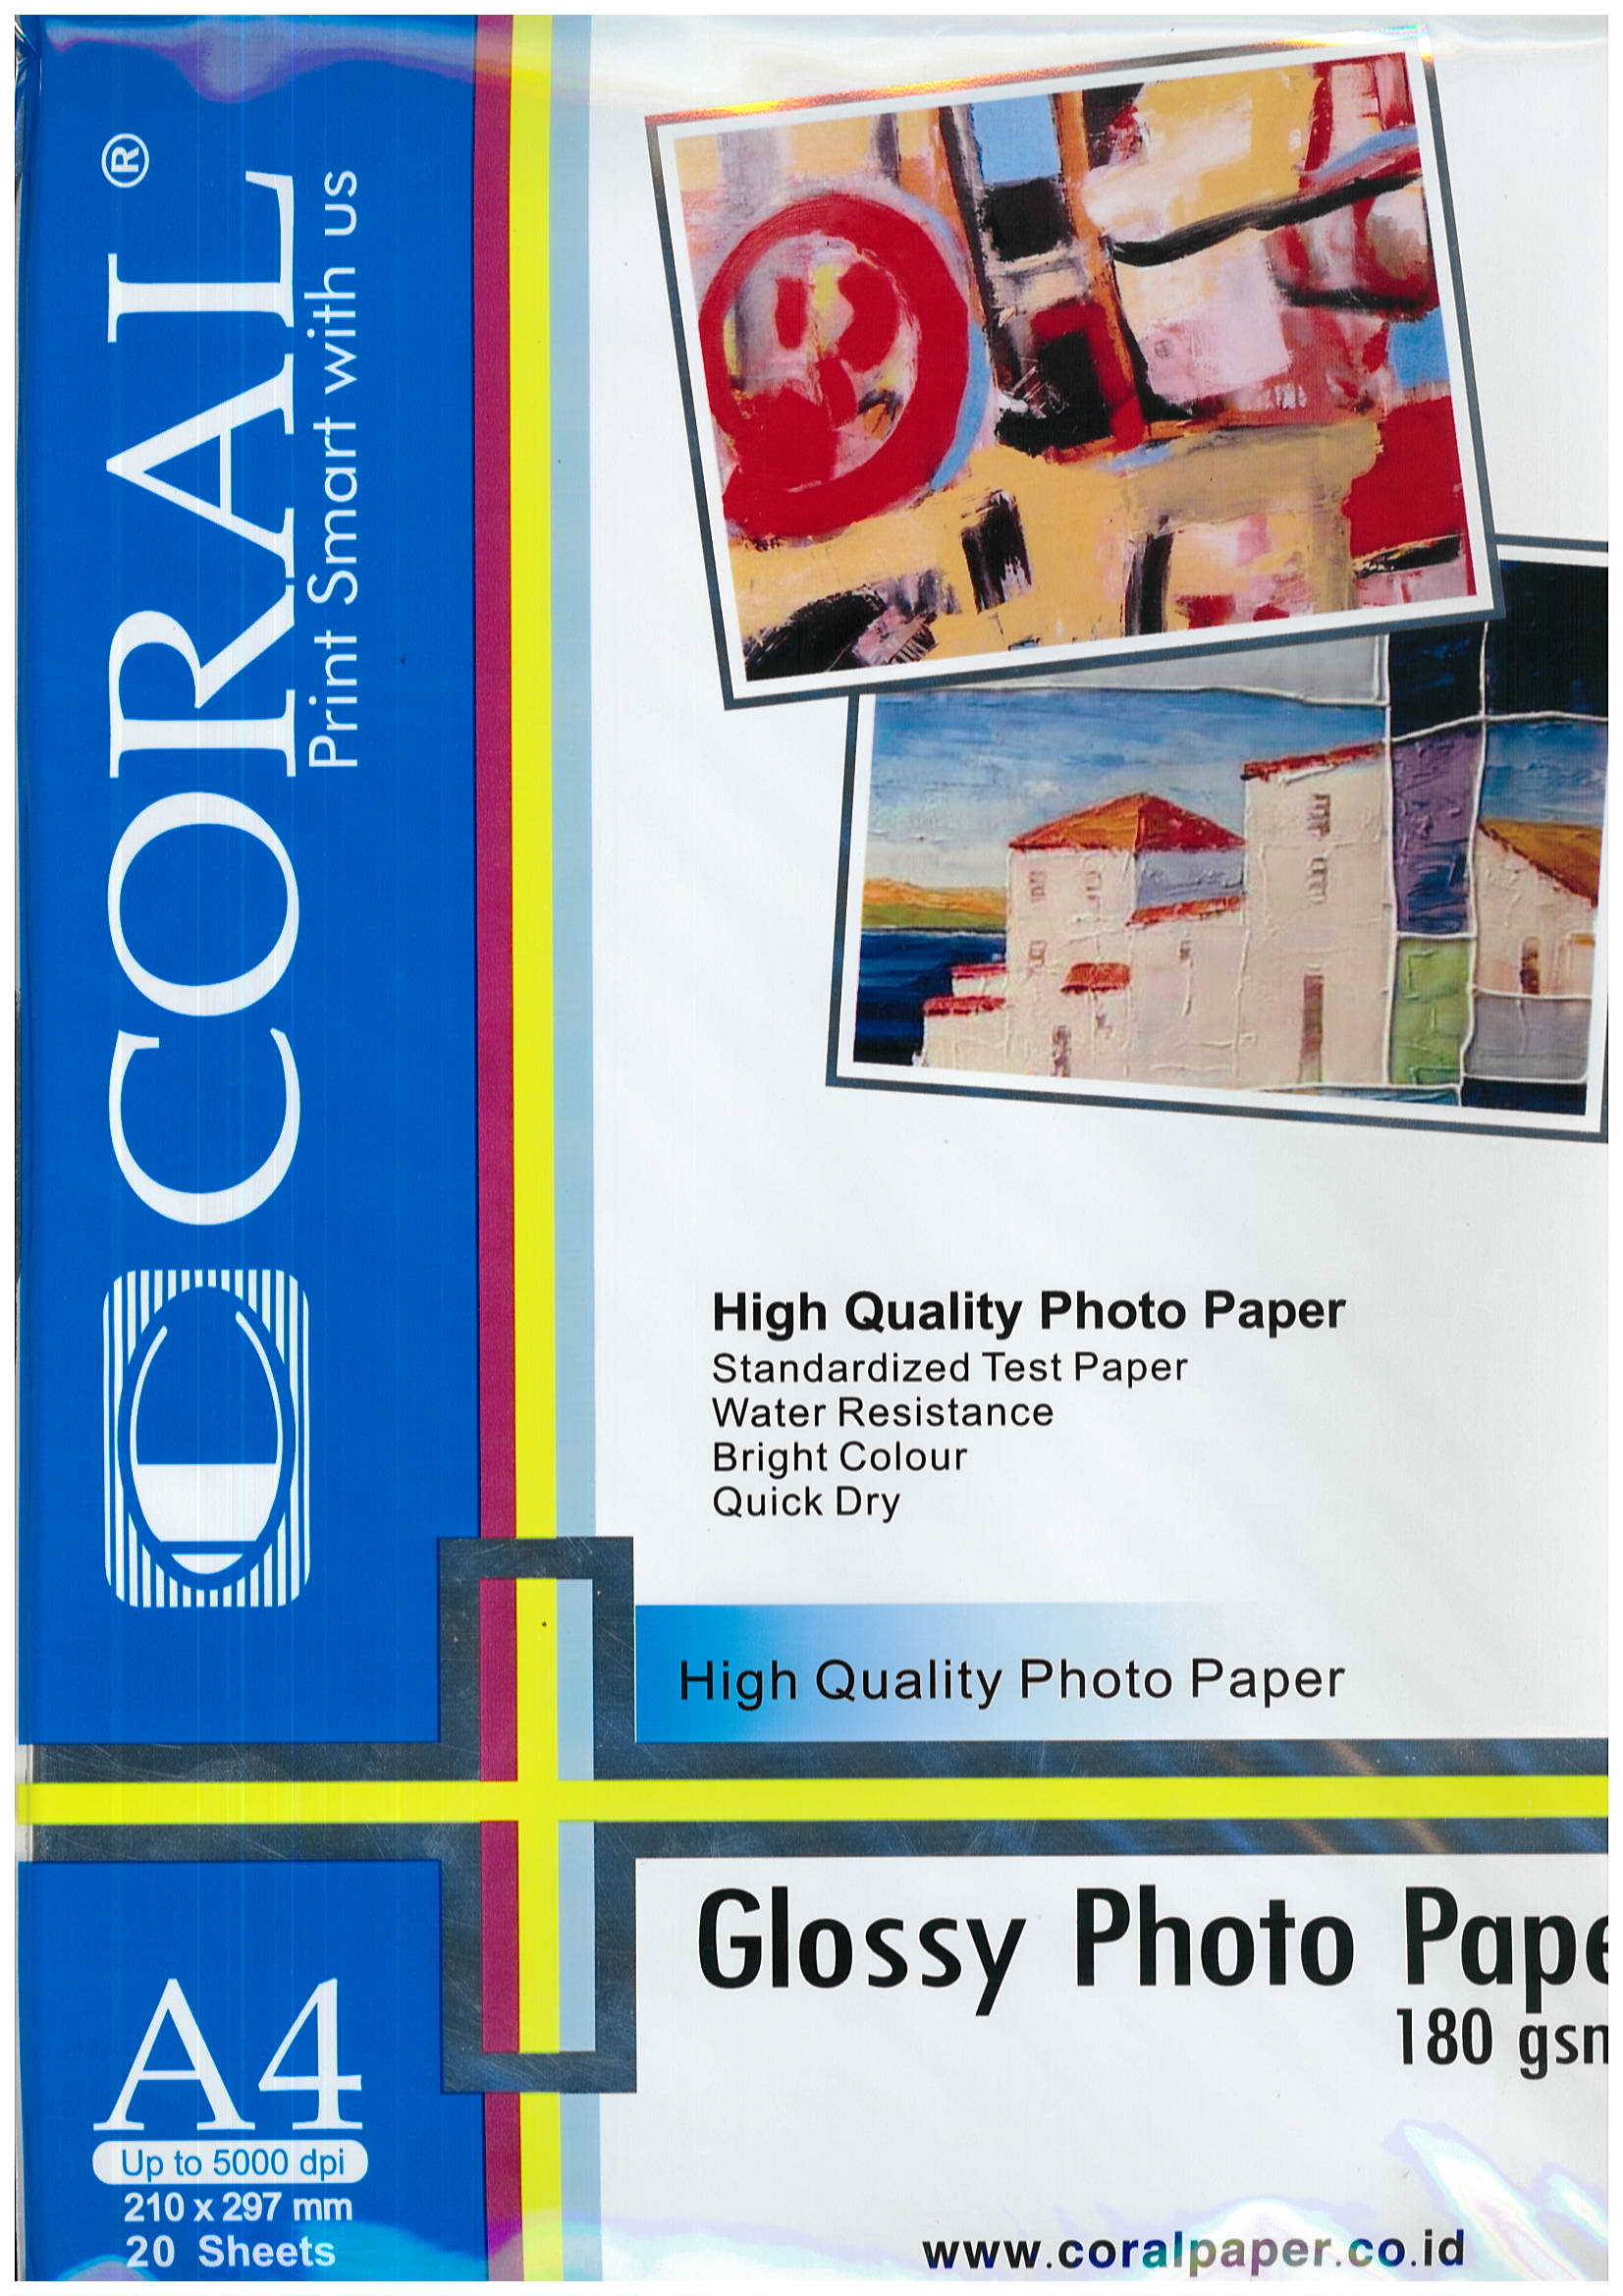 GLOSSY PHOTO PAPER A4 180GSM CORAL